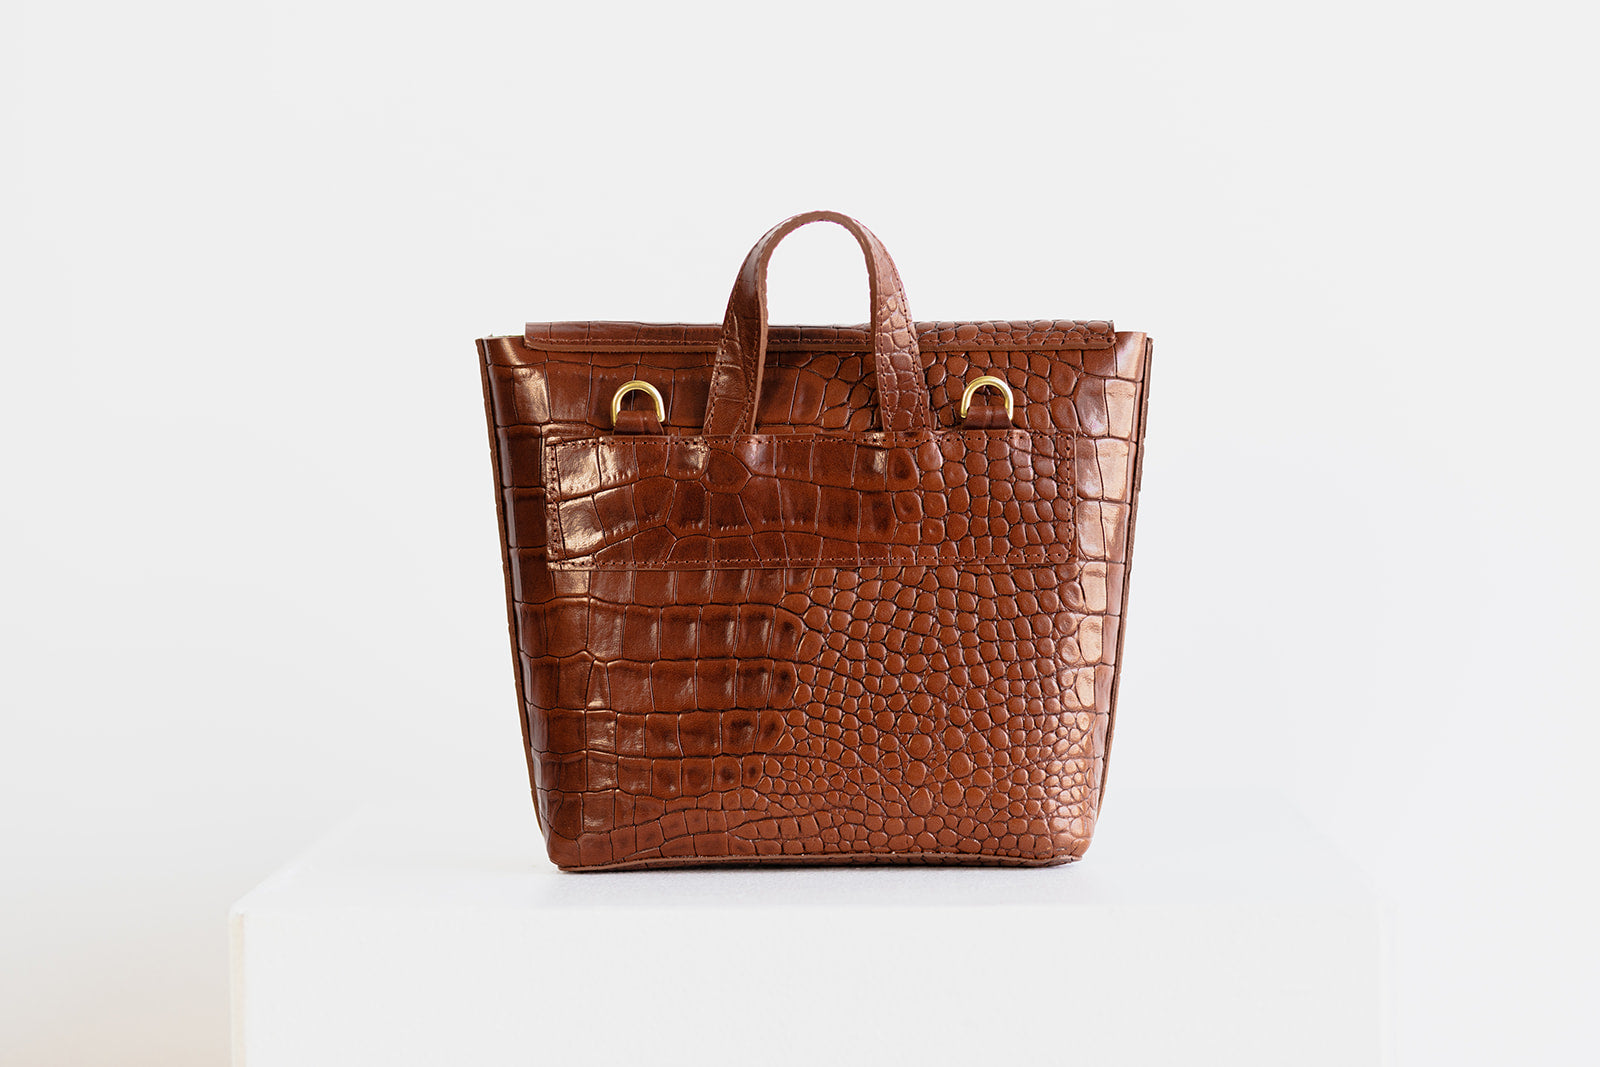 MINI SAINT LUCIA - BROWN CROC EMBOSS